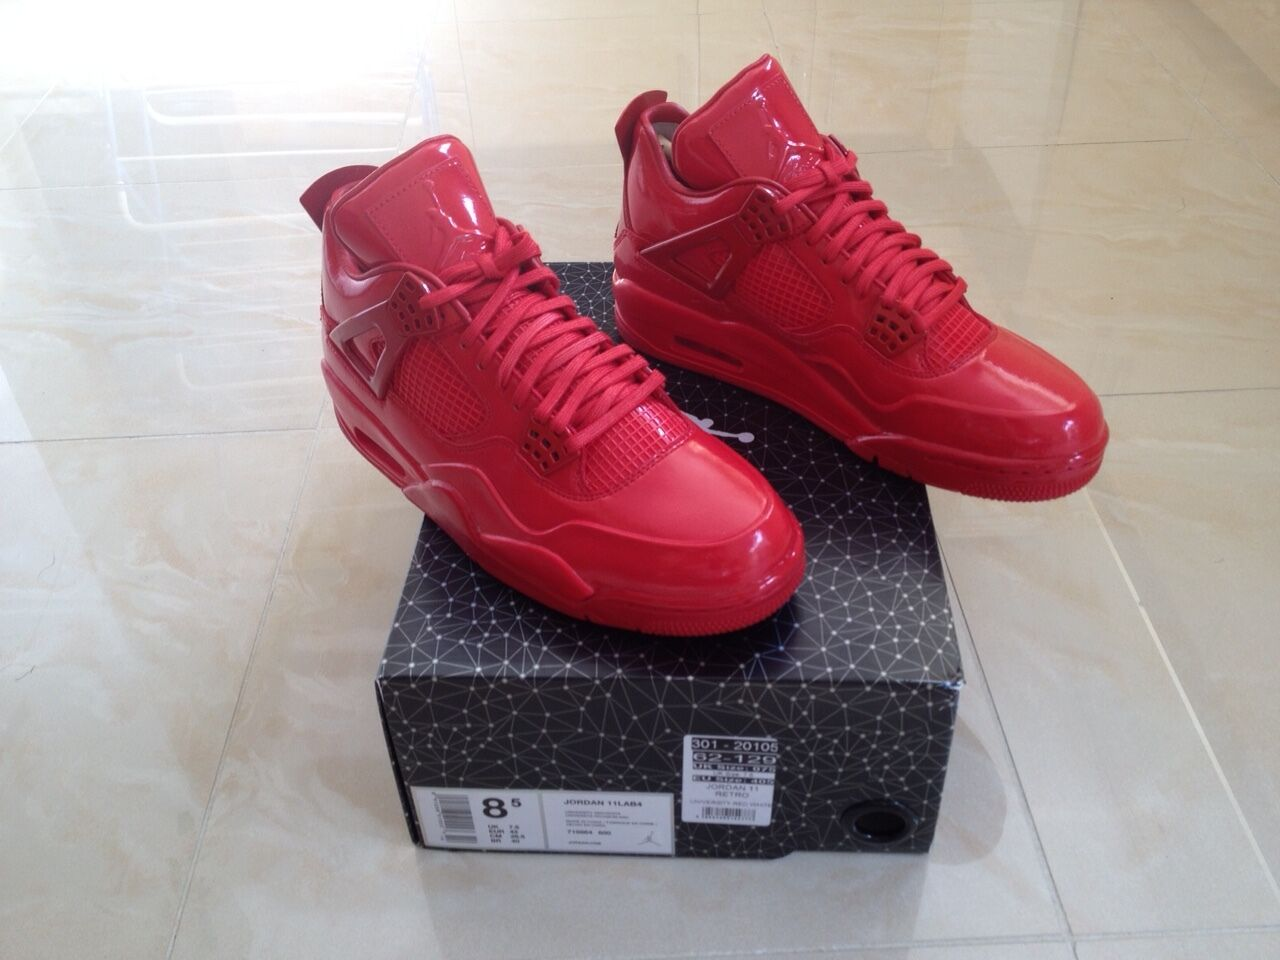 2015 Nike Air Jordan 11LAB4 rot LIMITED EDITION EDITION EDITION NEW Größe UK 13  d75dc5